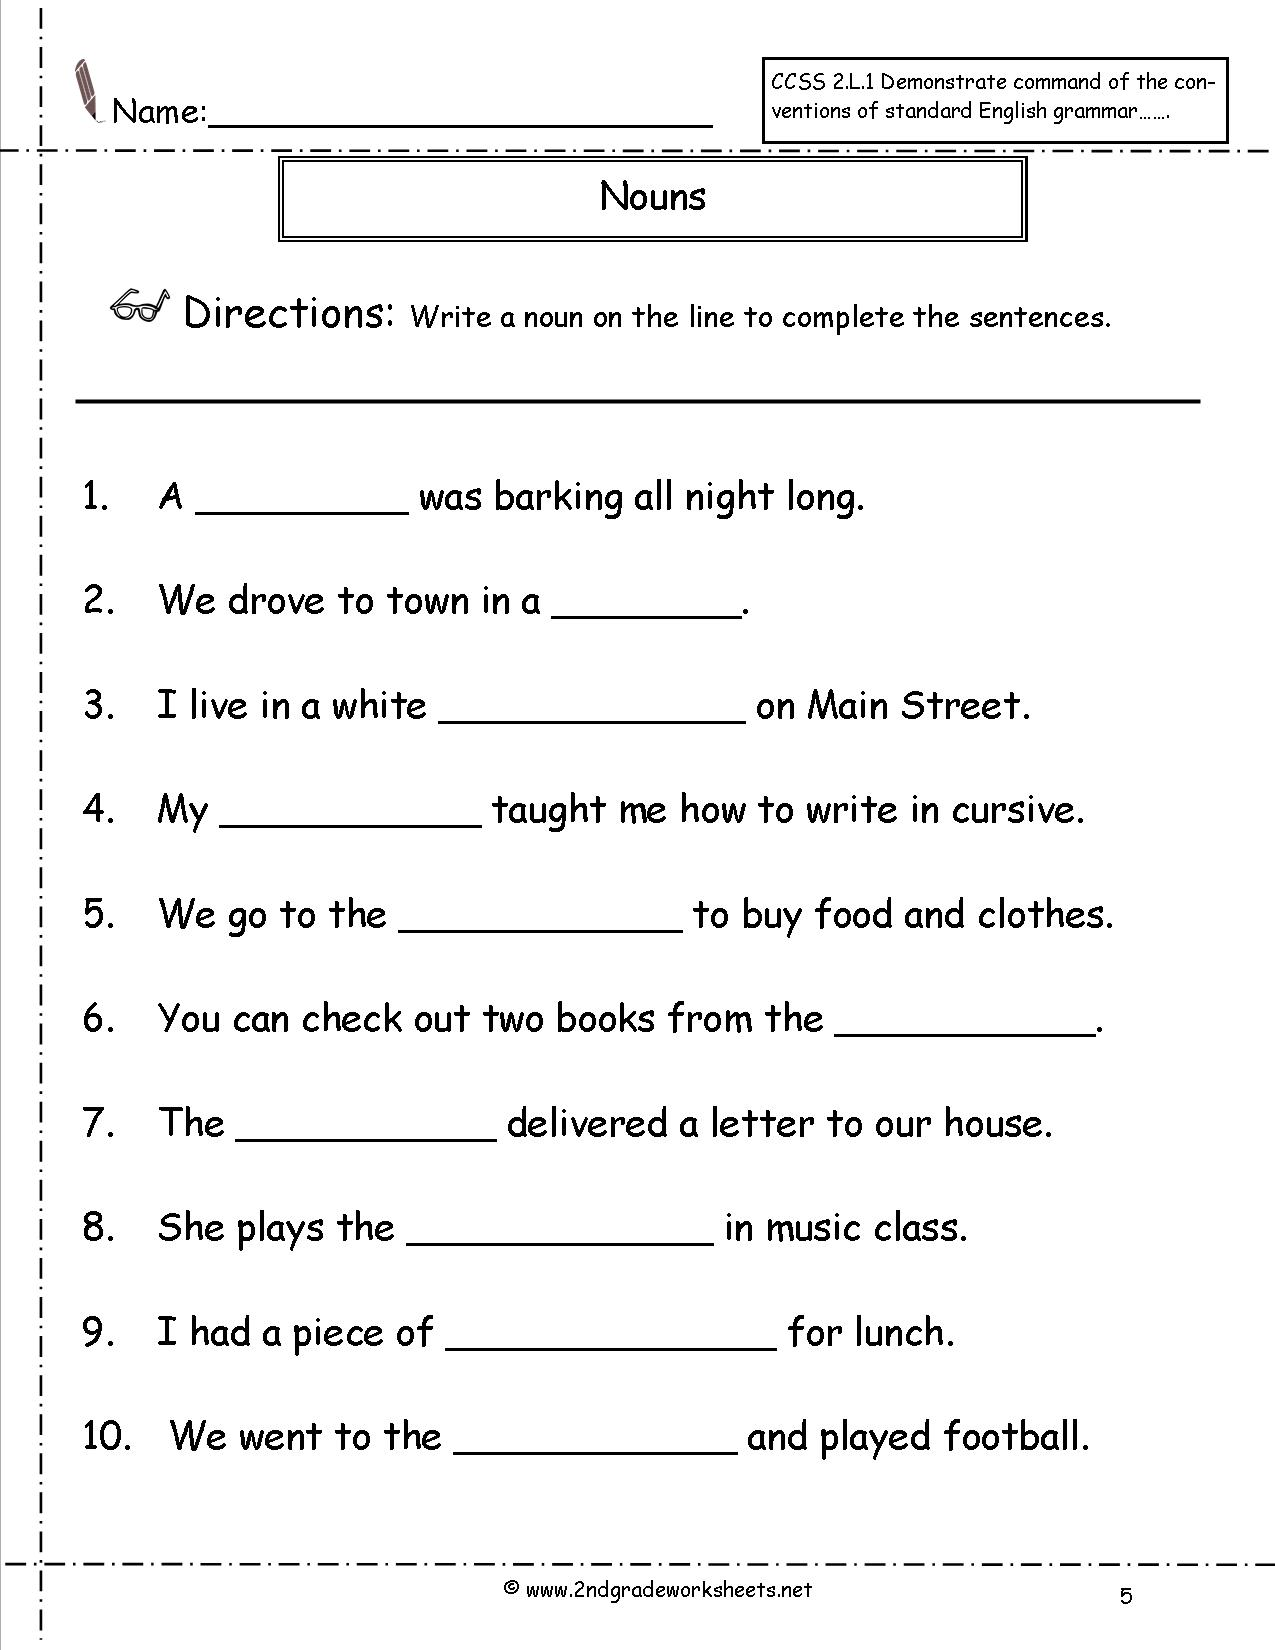 Nouns Worksheets 2nd Grade